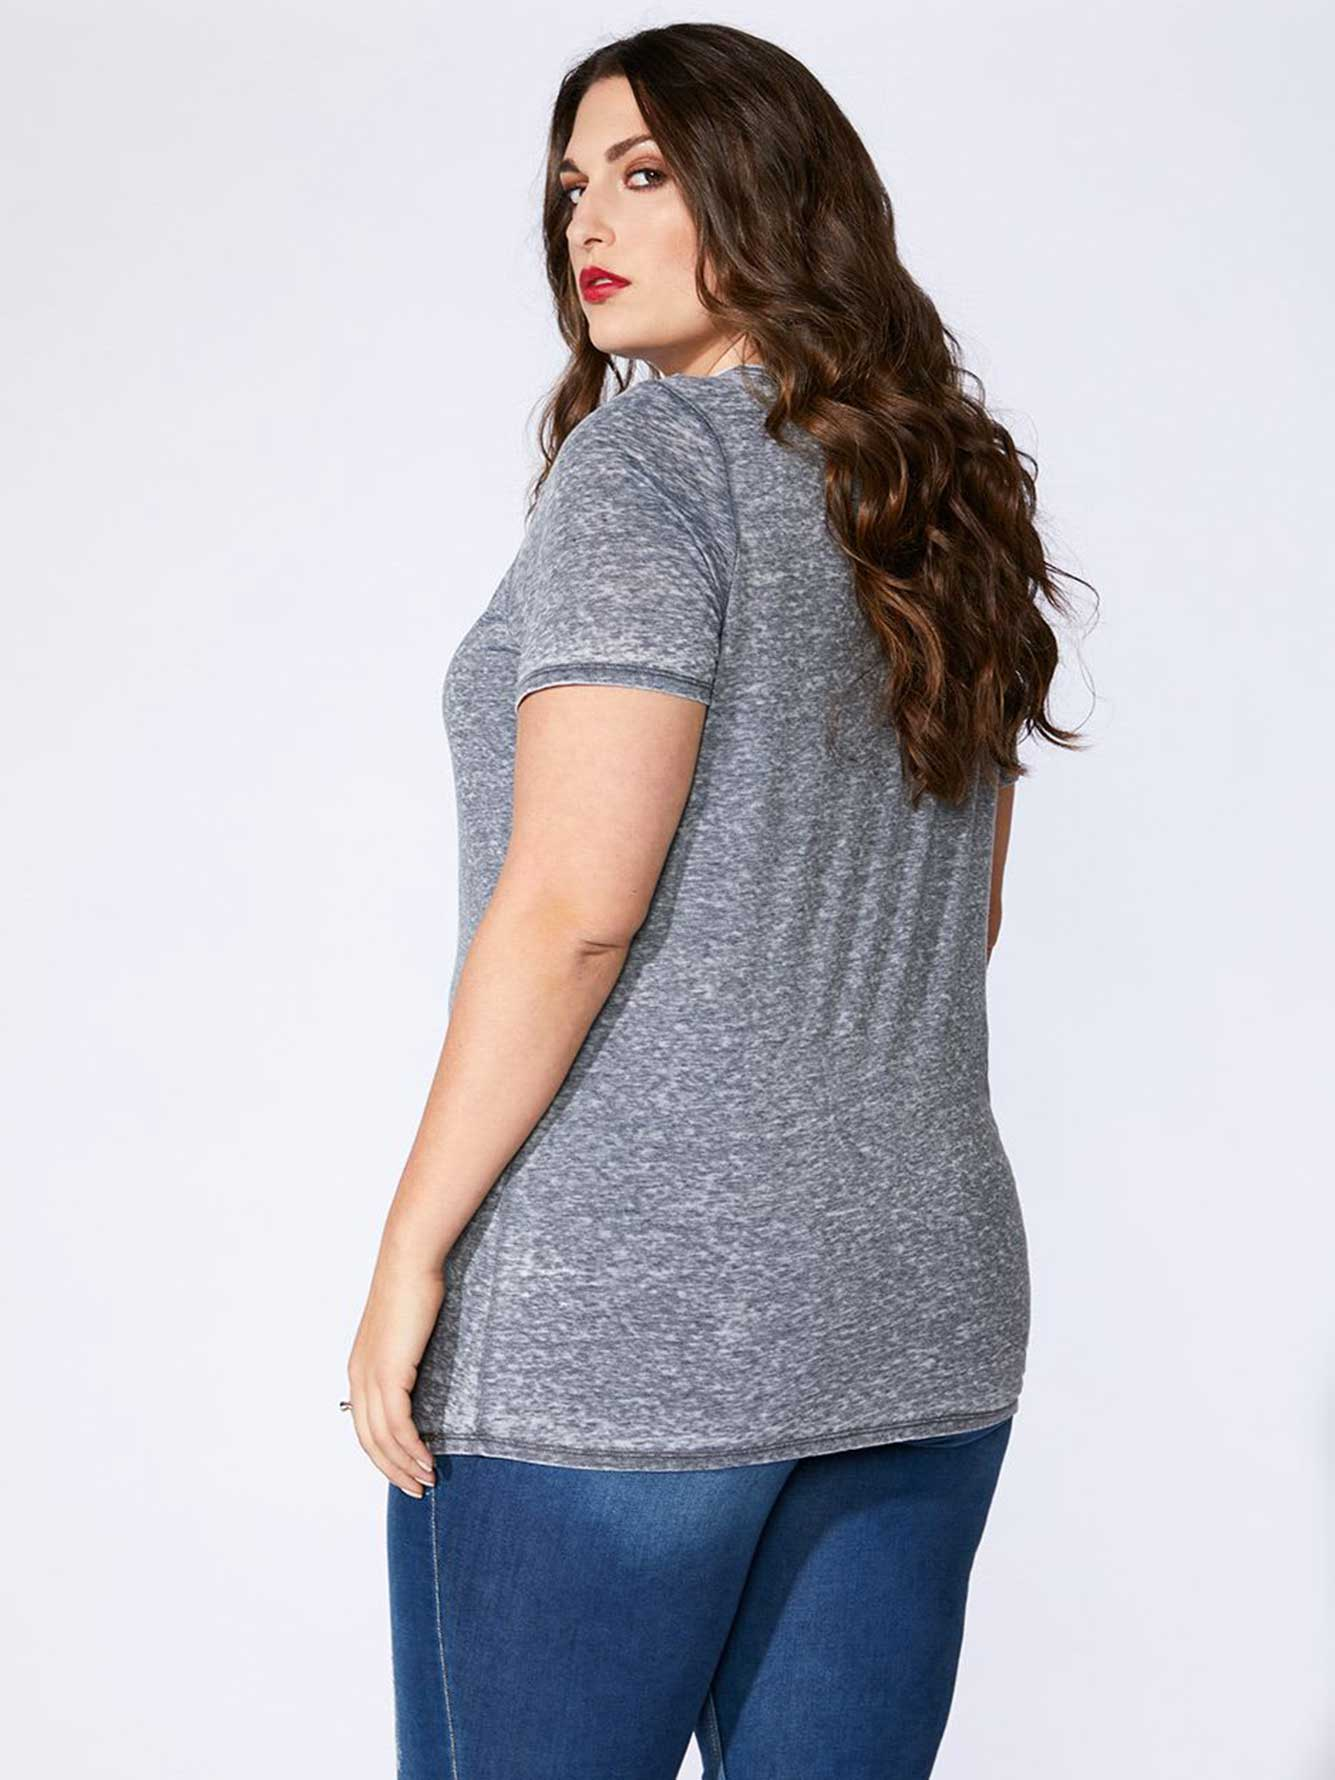 Short Sleeve Top with Drawstring - mblm